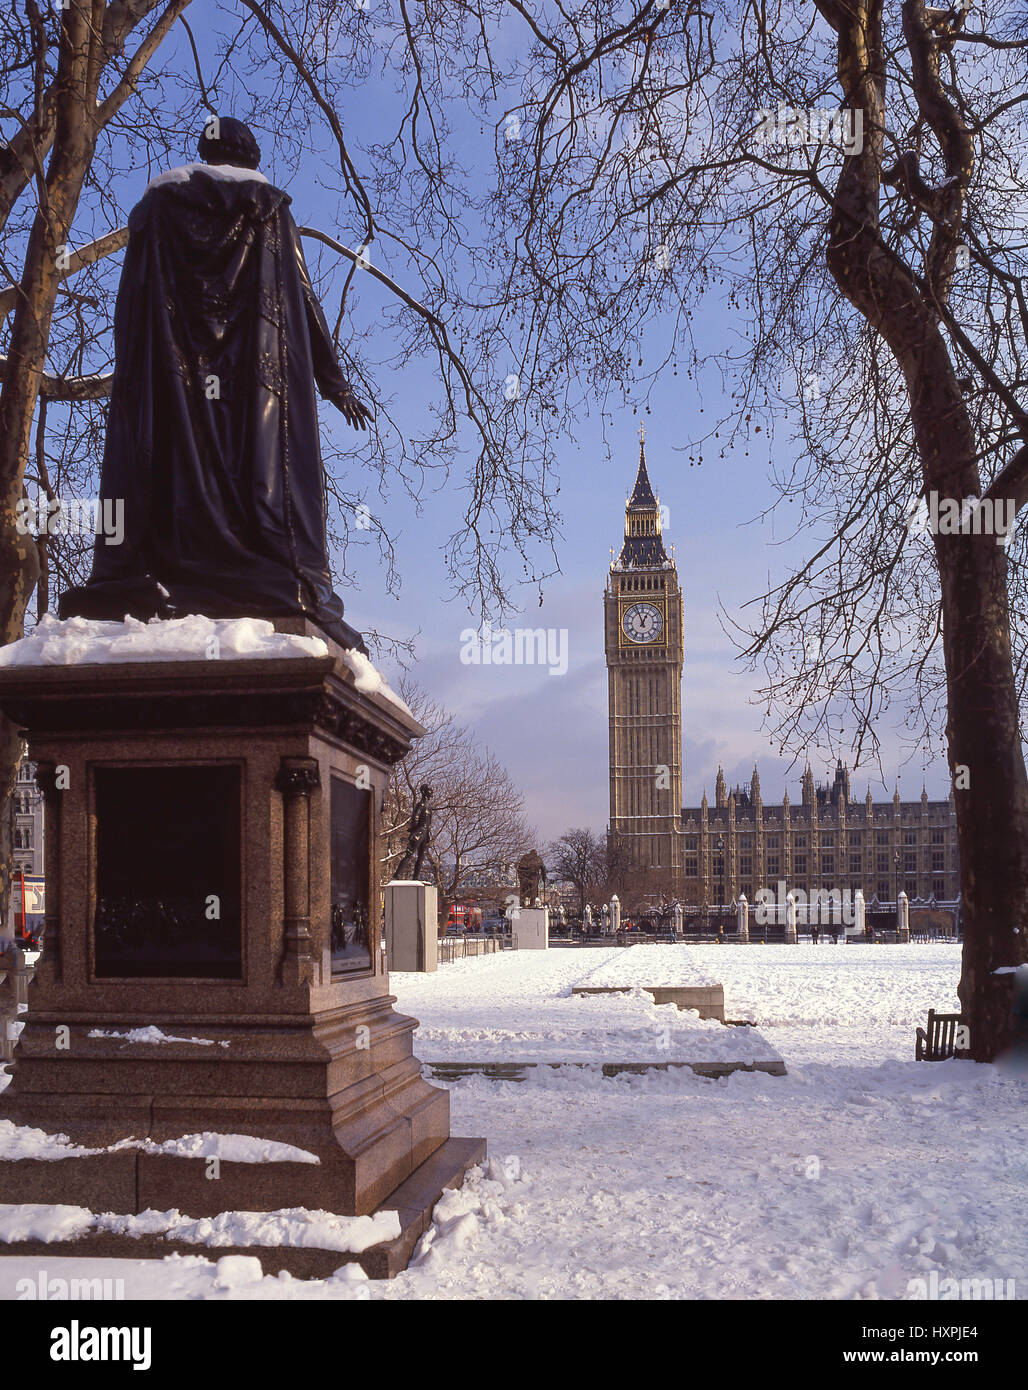 Parliament Square and Big Ben in snow, City of Westminster, Greater London, England, United Kingdom - Stock Image